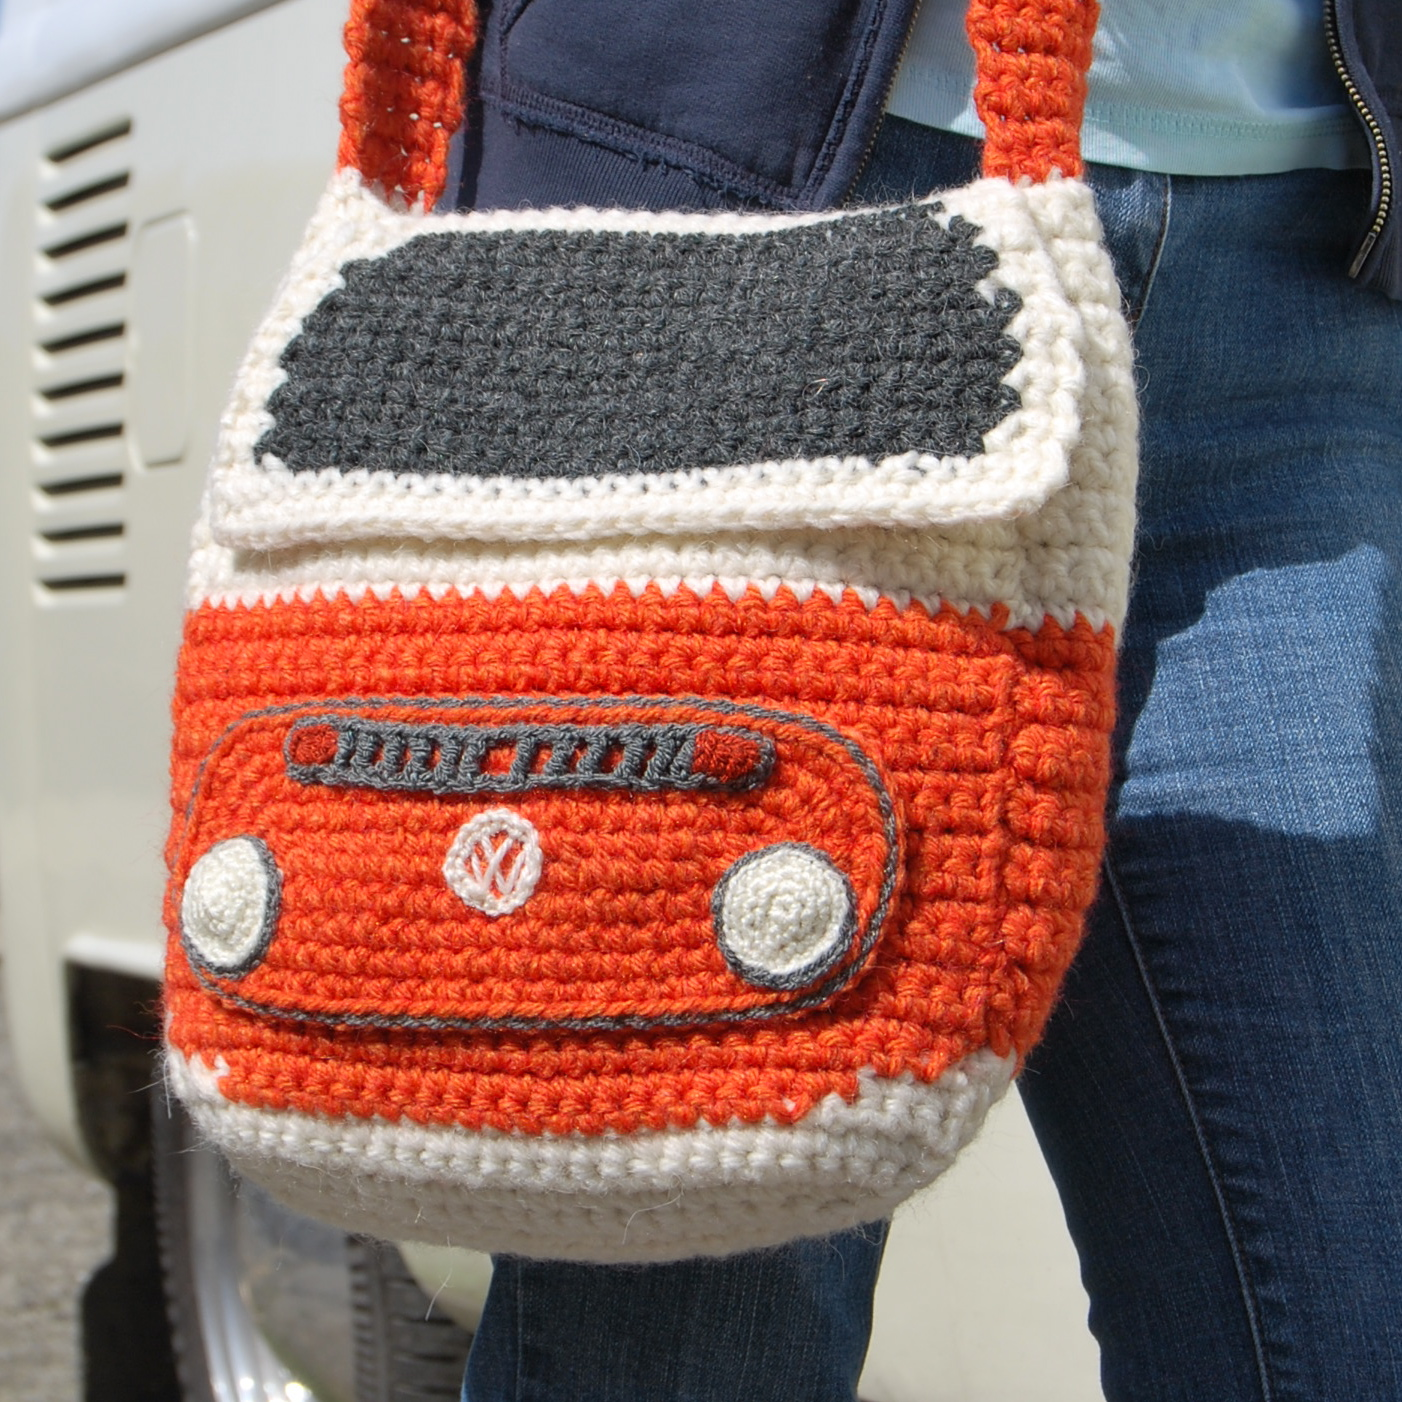 Pdf crochet pattern for bay campervan shoulder bag slightly sheepish pdf crochet pattern for bay campervan shoulder bag bankloansurffo Choice Image